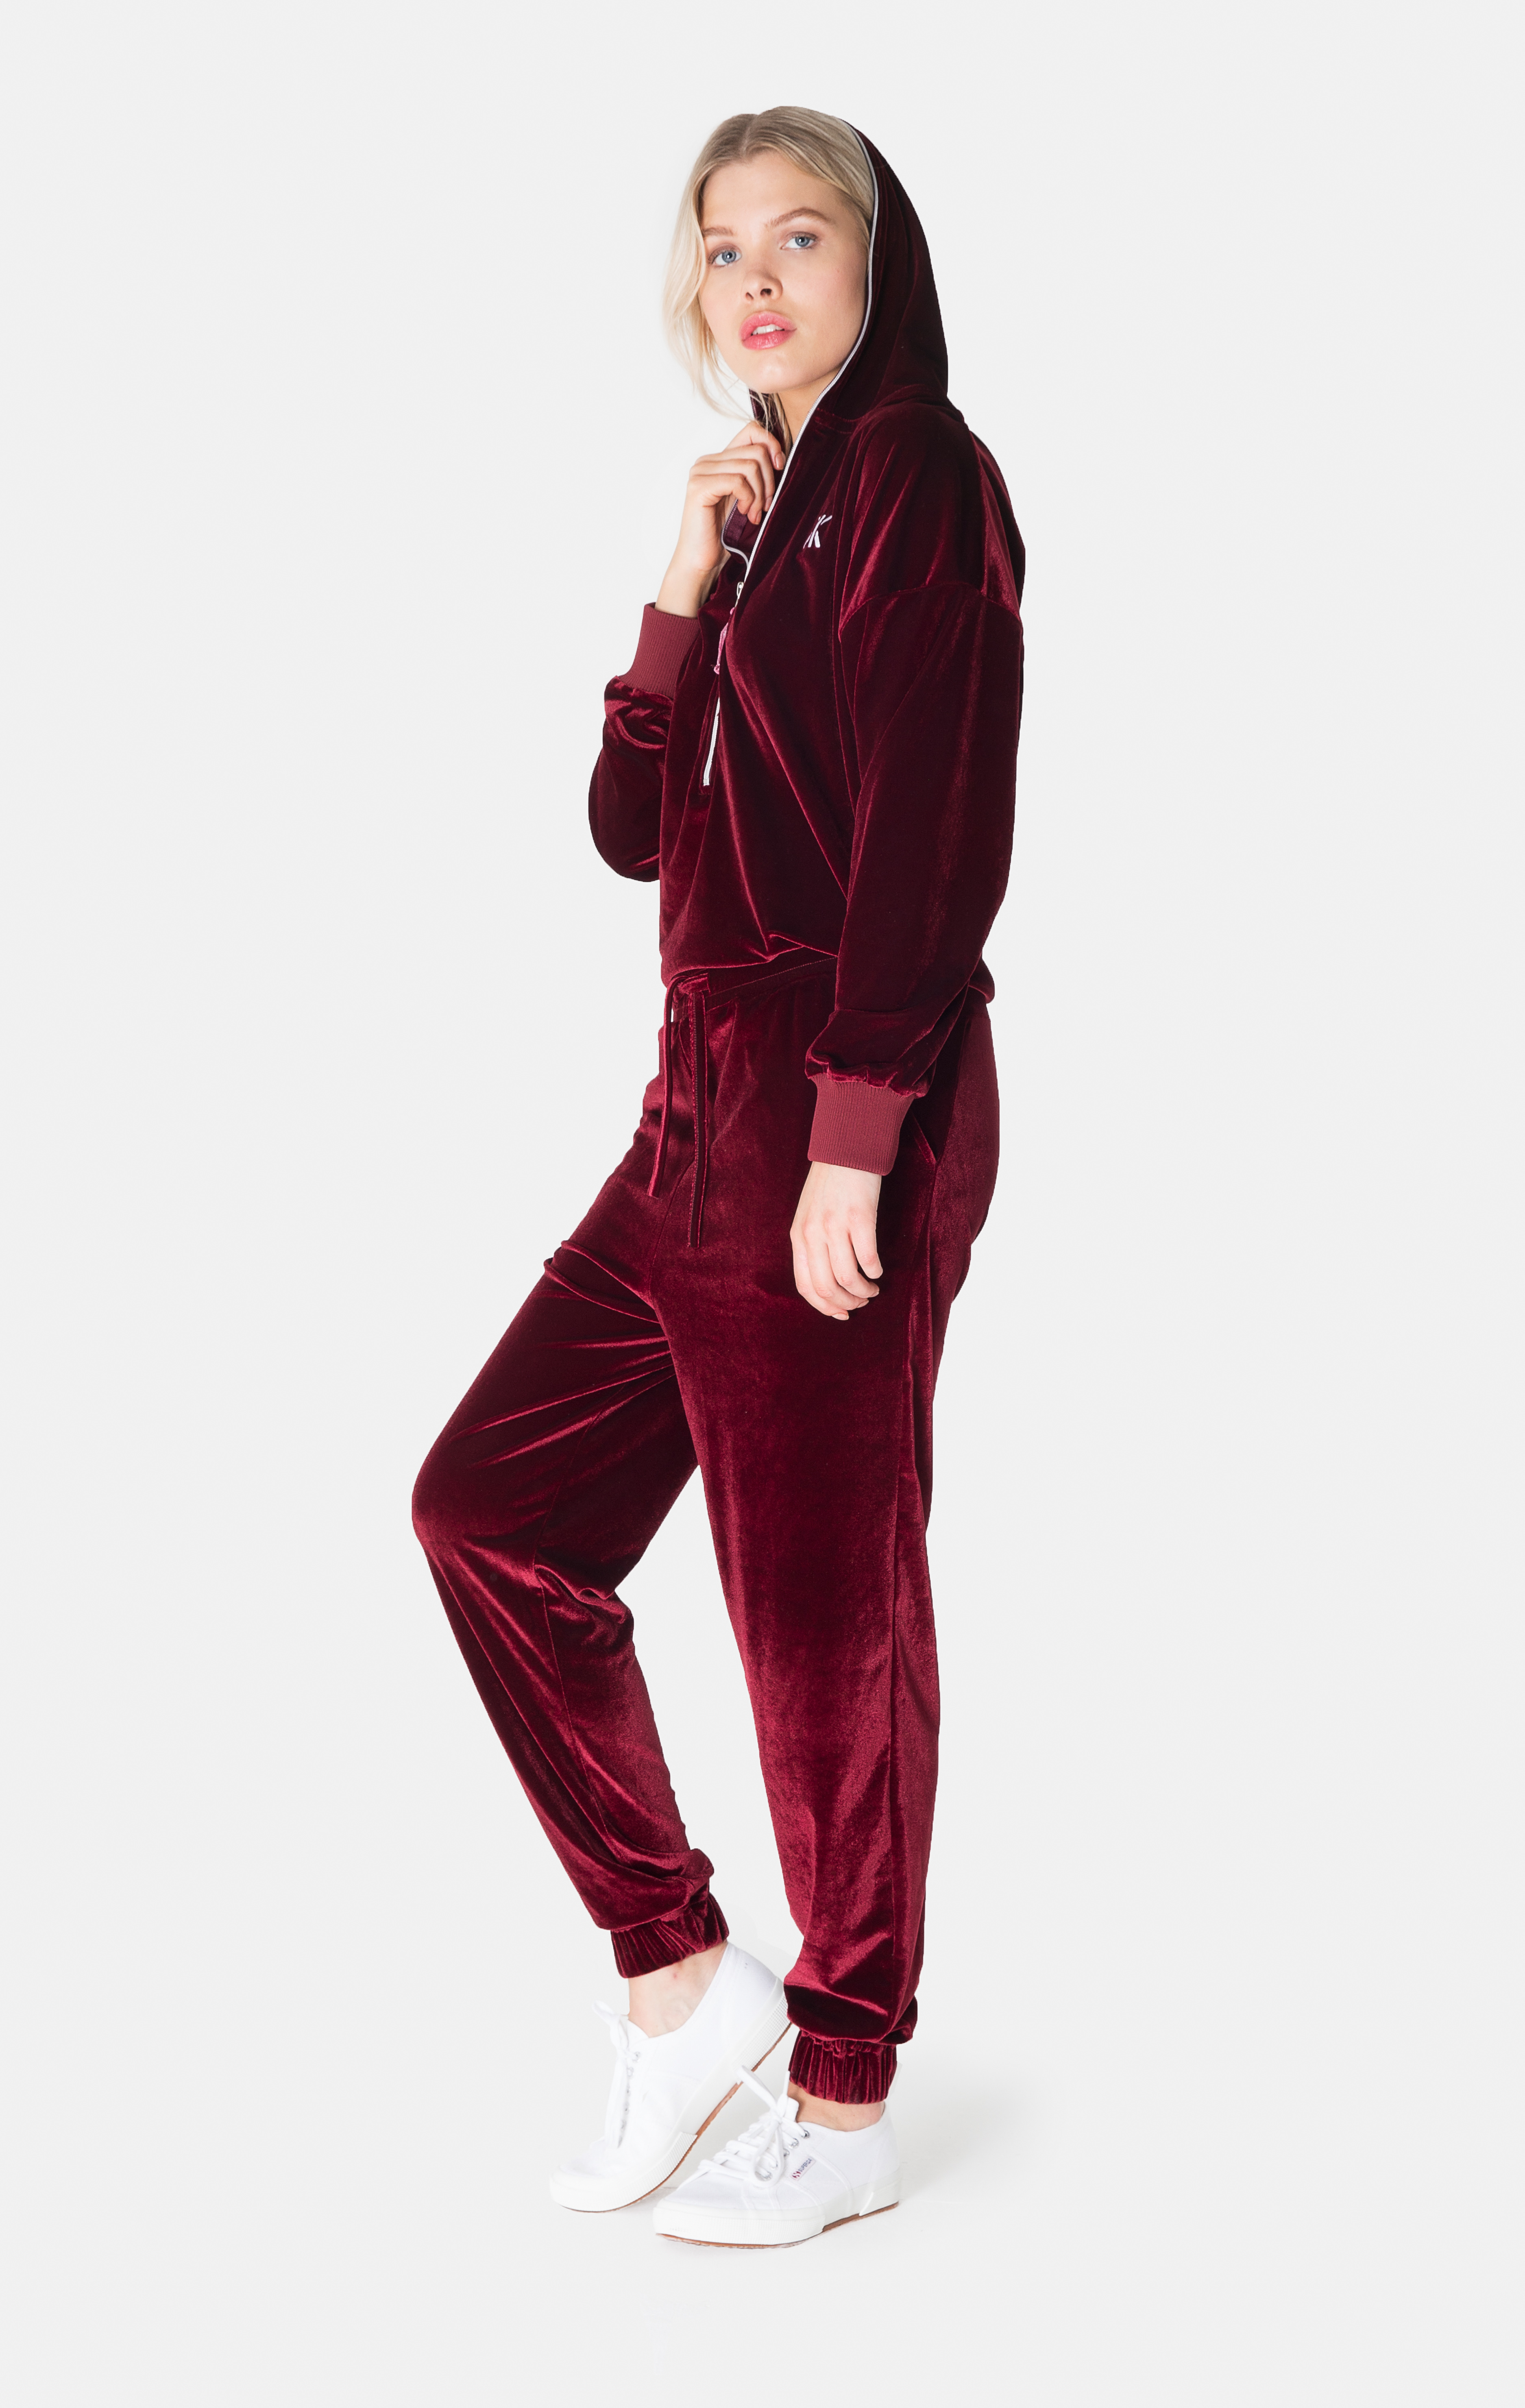 a16ccc23a7b Womens velour jumpsuit red jpg 314x578 Velour rompers for women